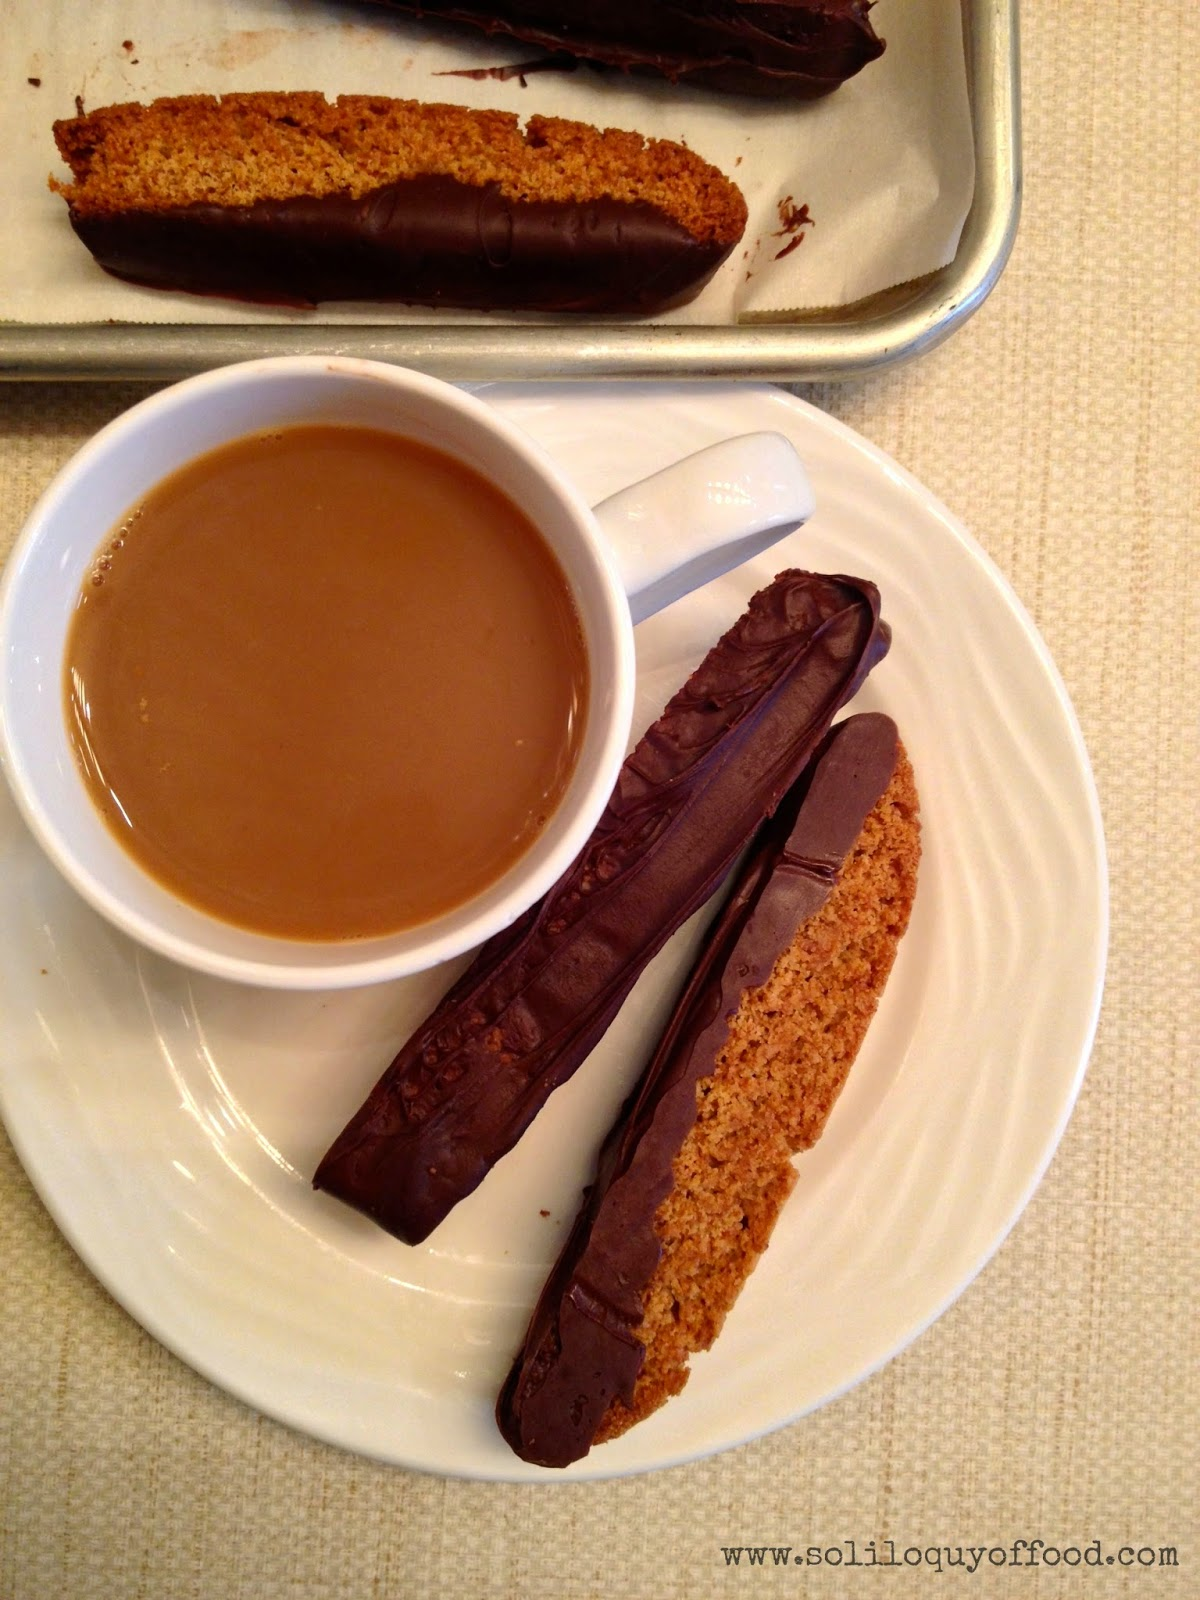 Chocolate Dipped Honey Graham Biscotti - Dunkable Approved Beverages:  Coffee, Tea, Hot Chocolate, Milk   www.soliloquyoffood.com via Love Bakes Good Cakes